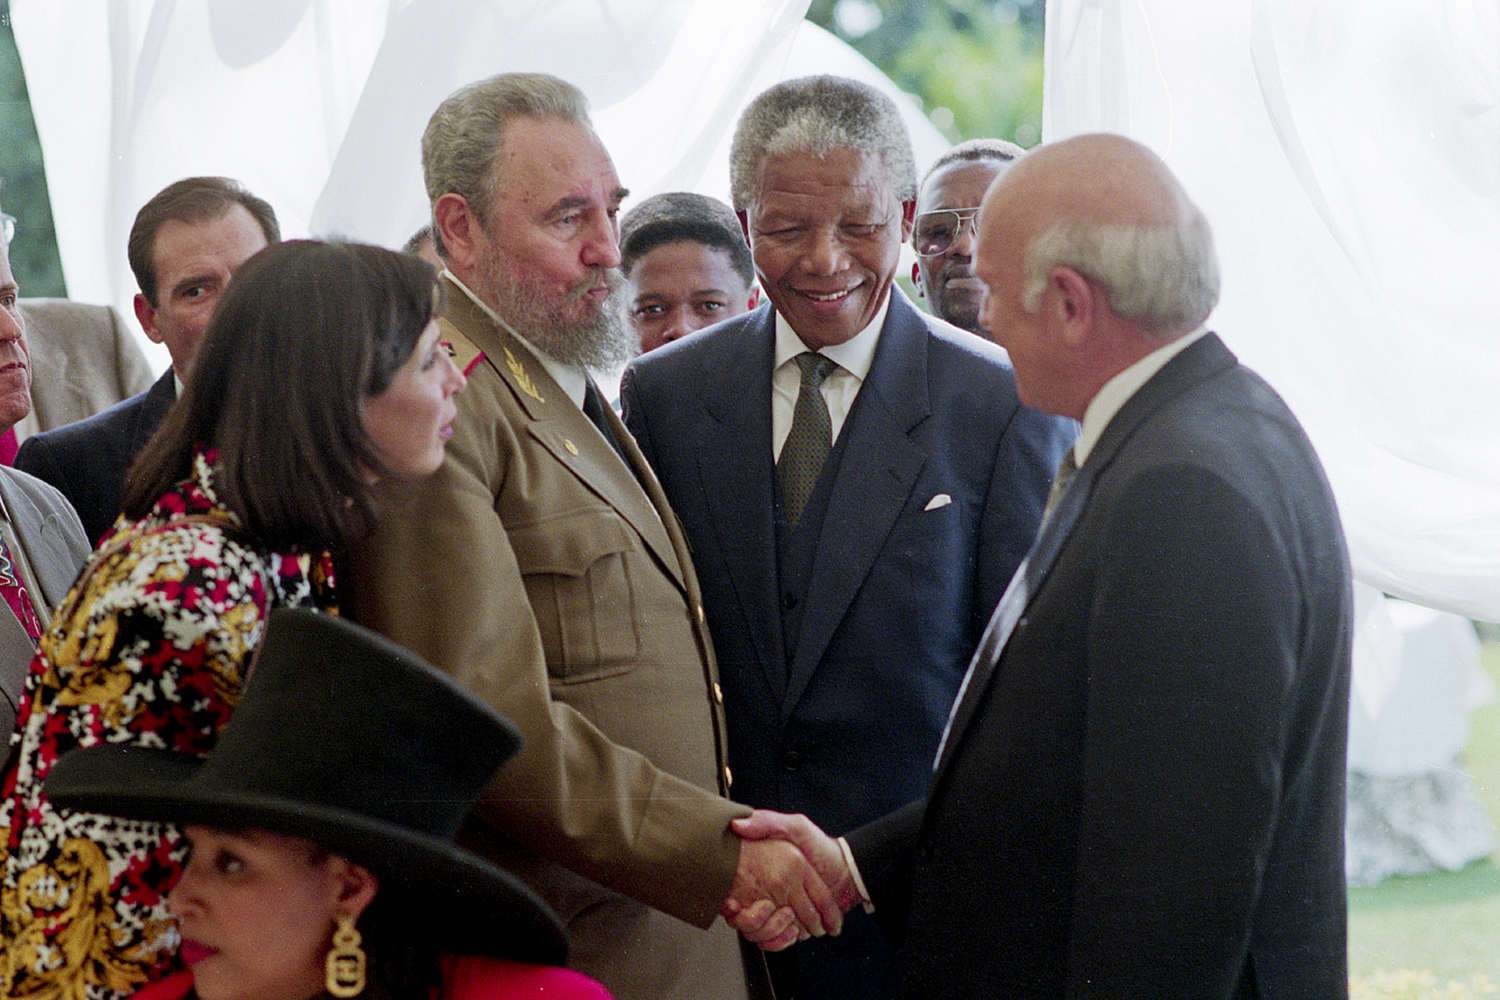 Just after Nelson Mandela's inaugural speech, he introduces Cuban President Fidel Castro to the former South African President F. W. De Klerk.